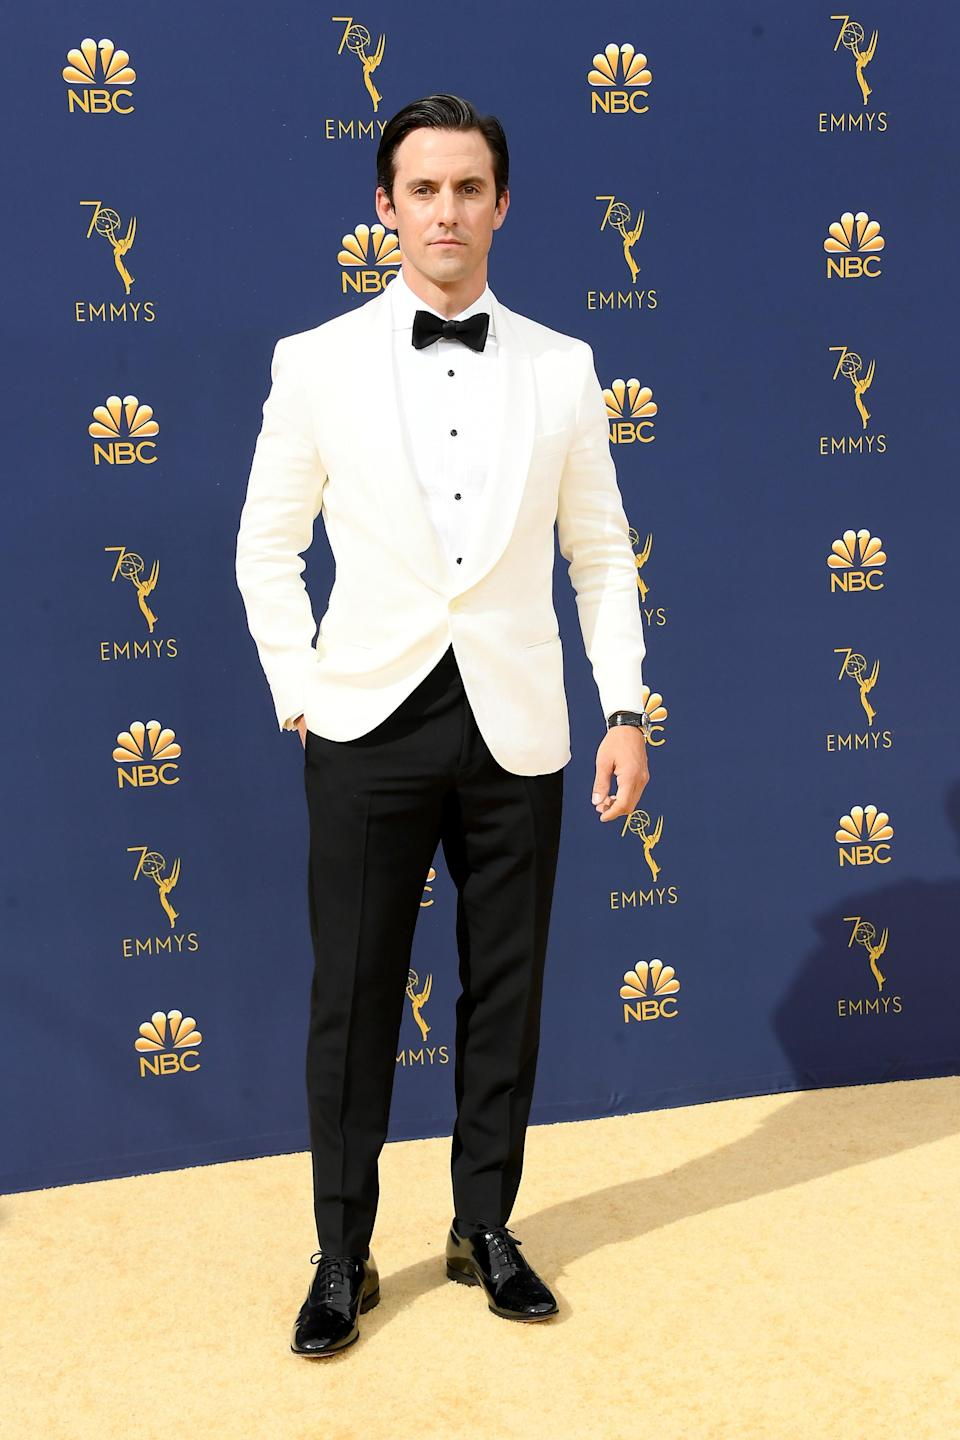 <p>Ventimiglia looked cool and classic in a white suit jacket with black buttons and a bow tie. (Photo: Getty Images) </p>